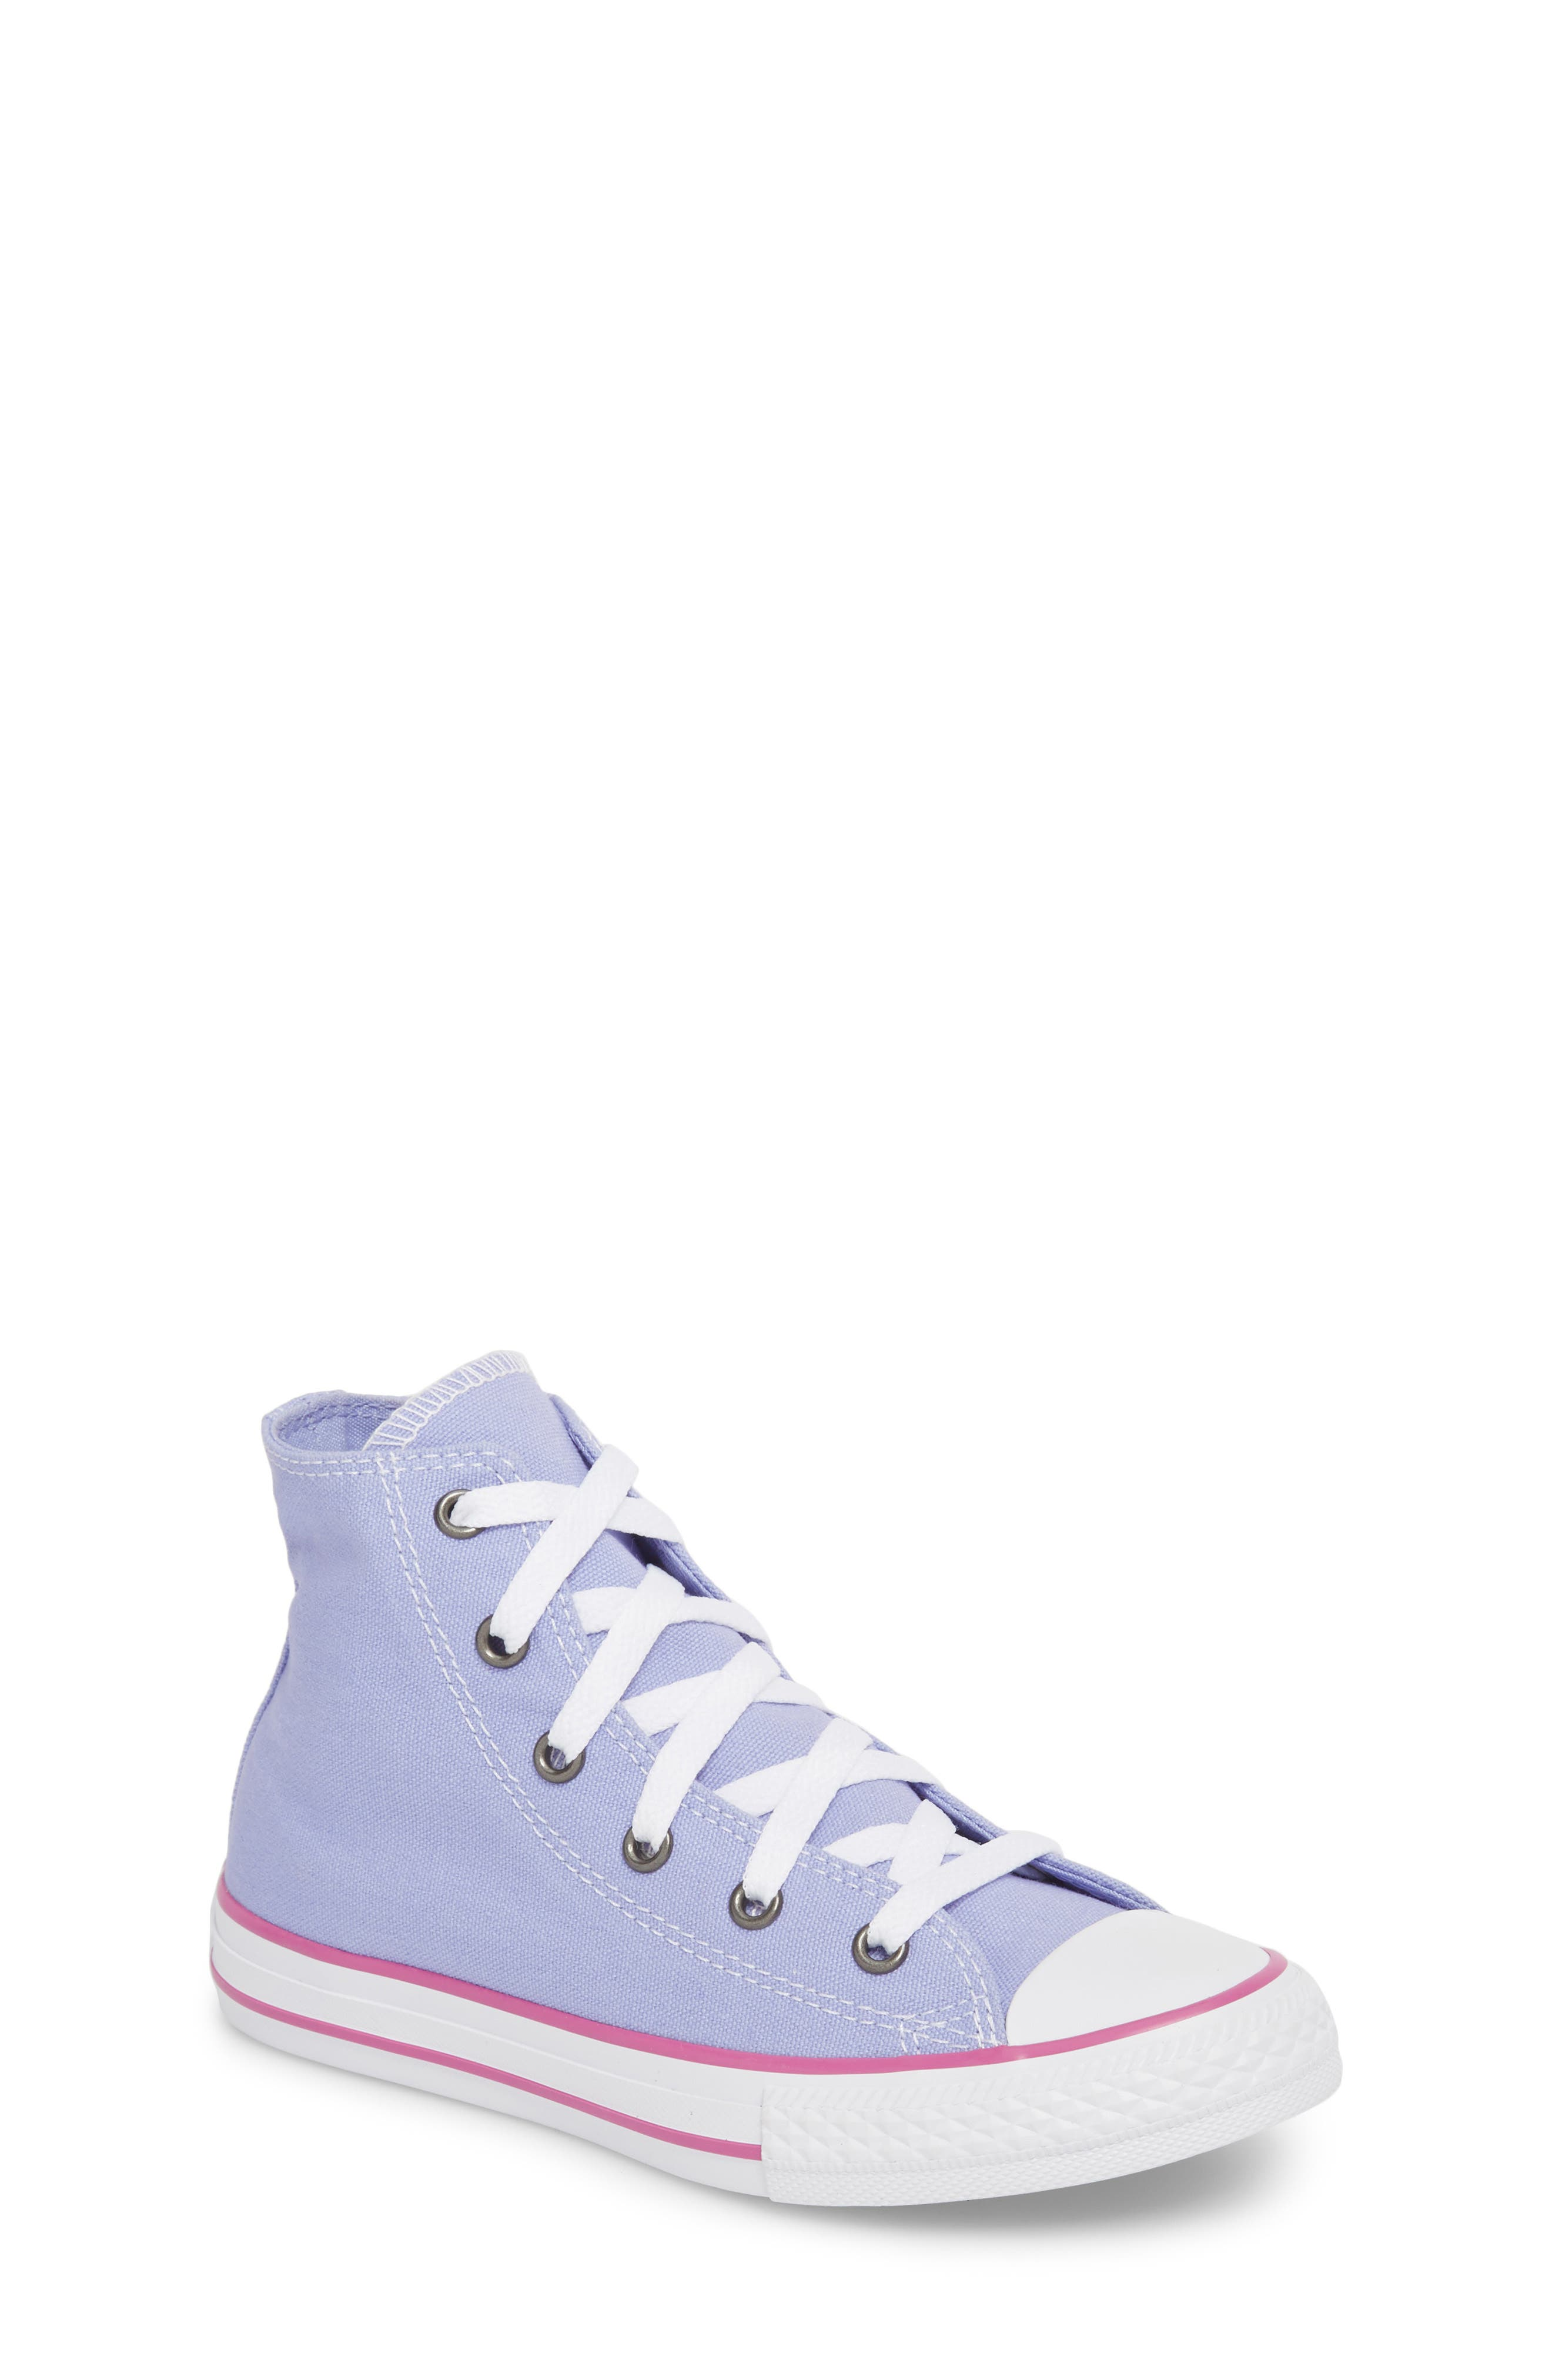 Chuck Taylor<sup>®</sup> All Star<sup>®</sup> High Top Sneaker,                             Main thumbnail 1, color,                             Twilight Purple